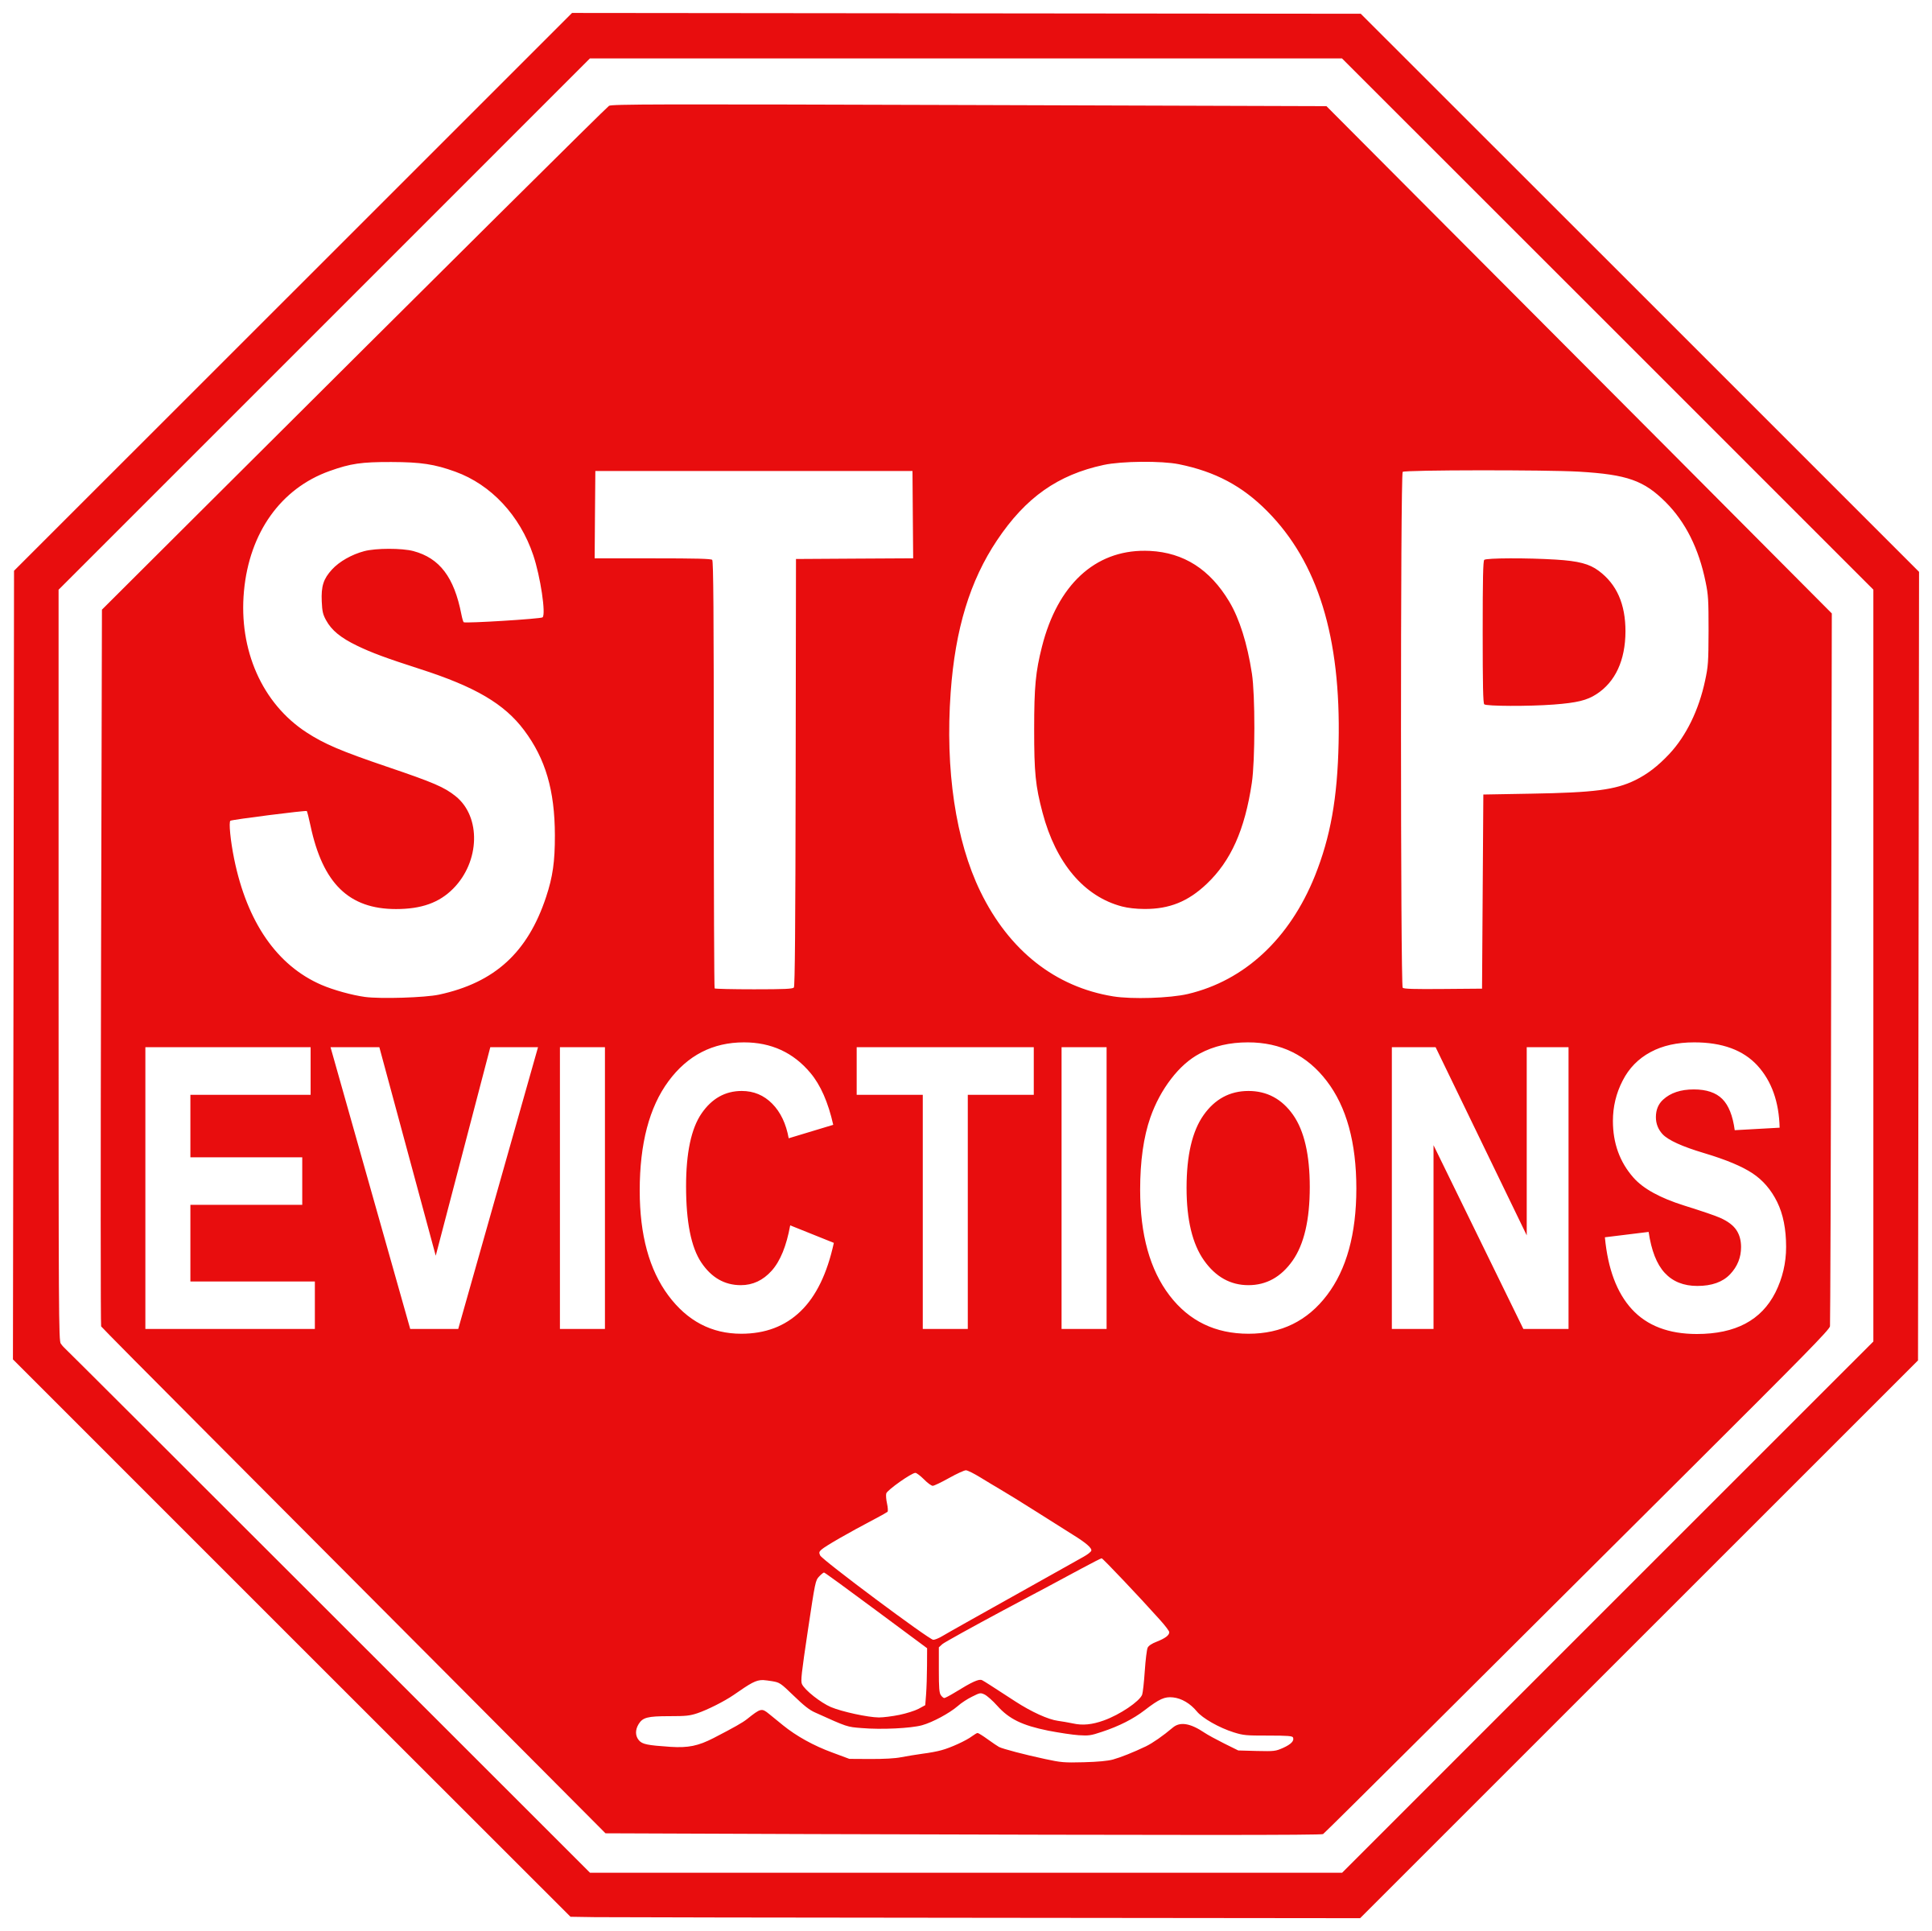 stop evictions by fofo